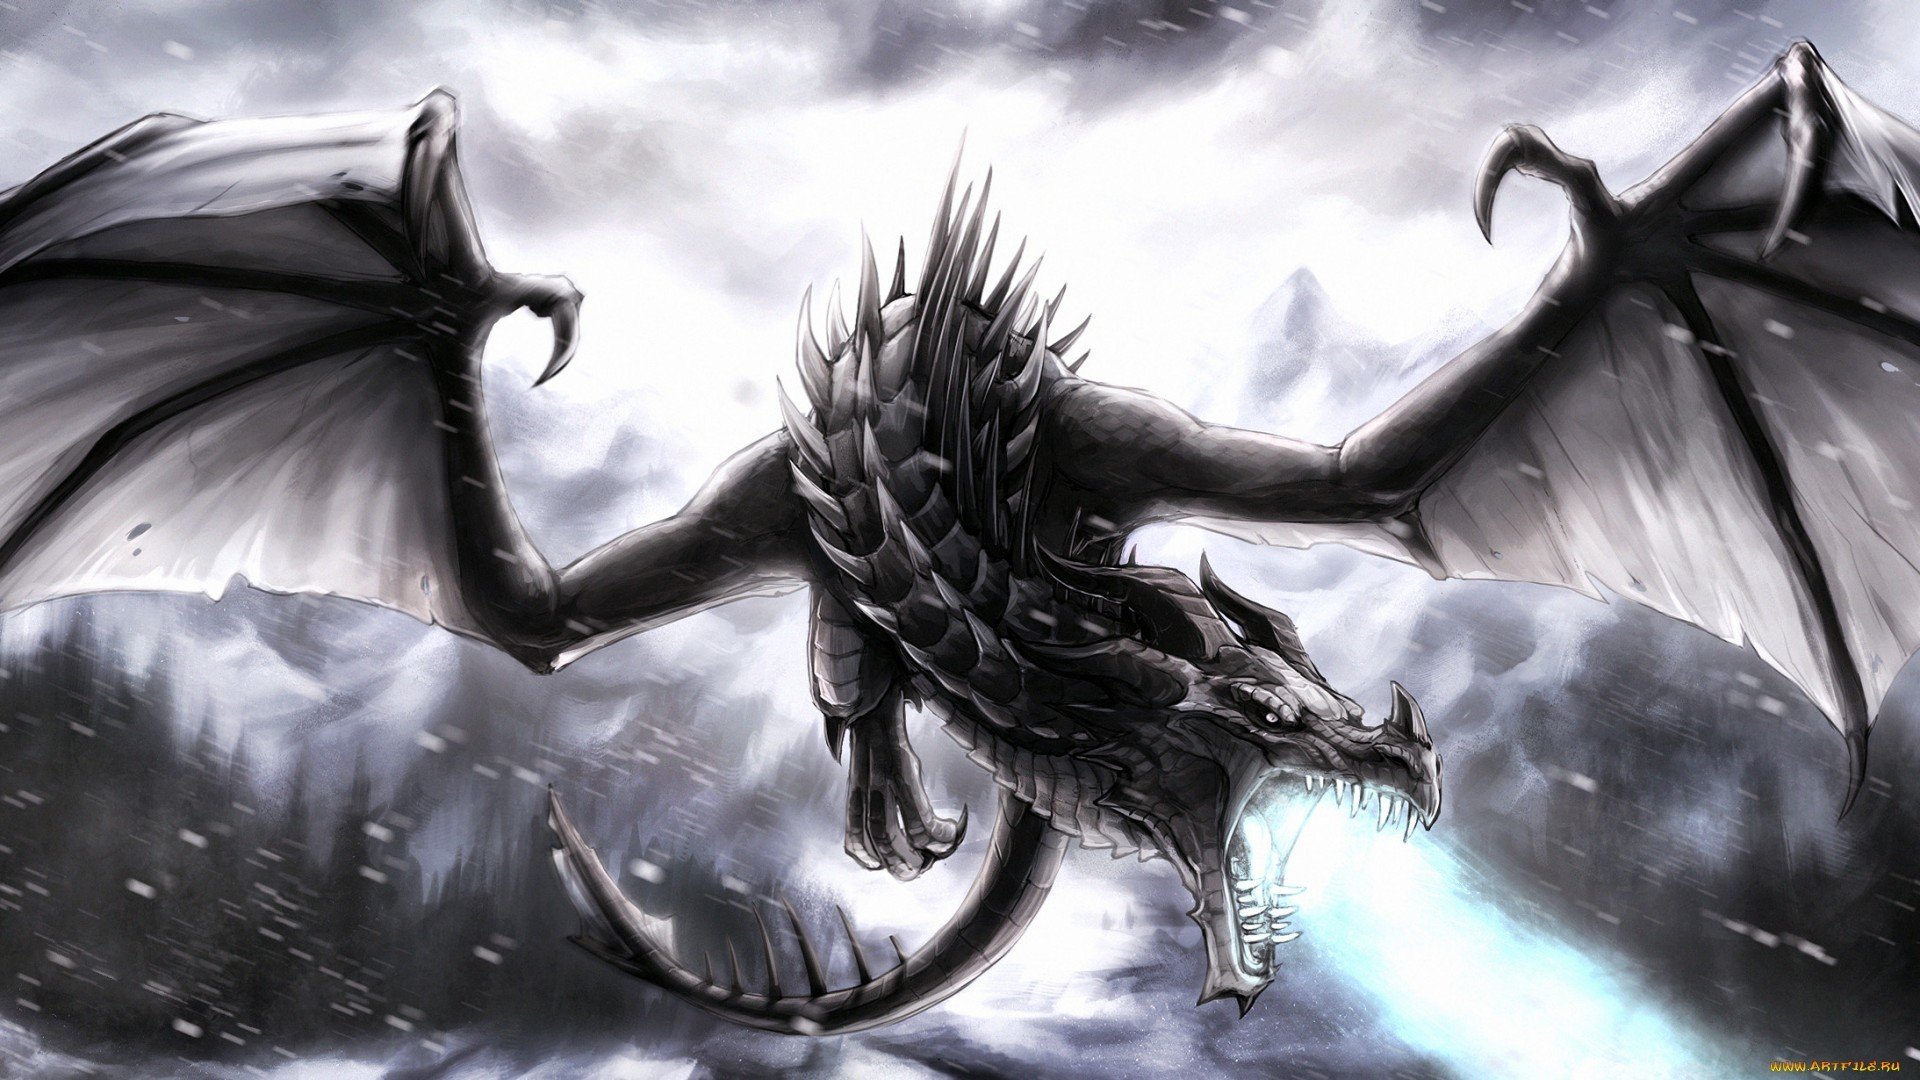 Lightning dragon wallpapers 65 images - Dragon backgrounds 1920x1080 ...